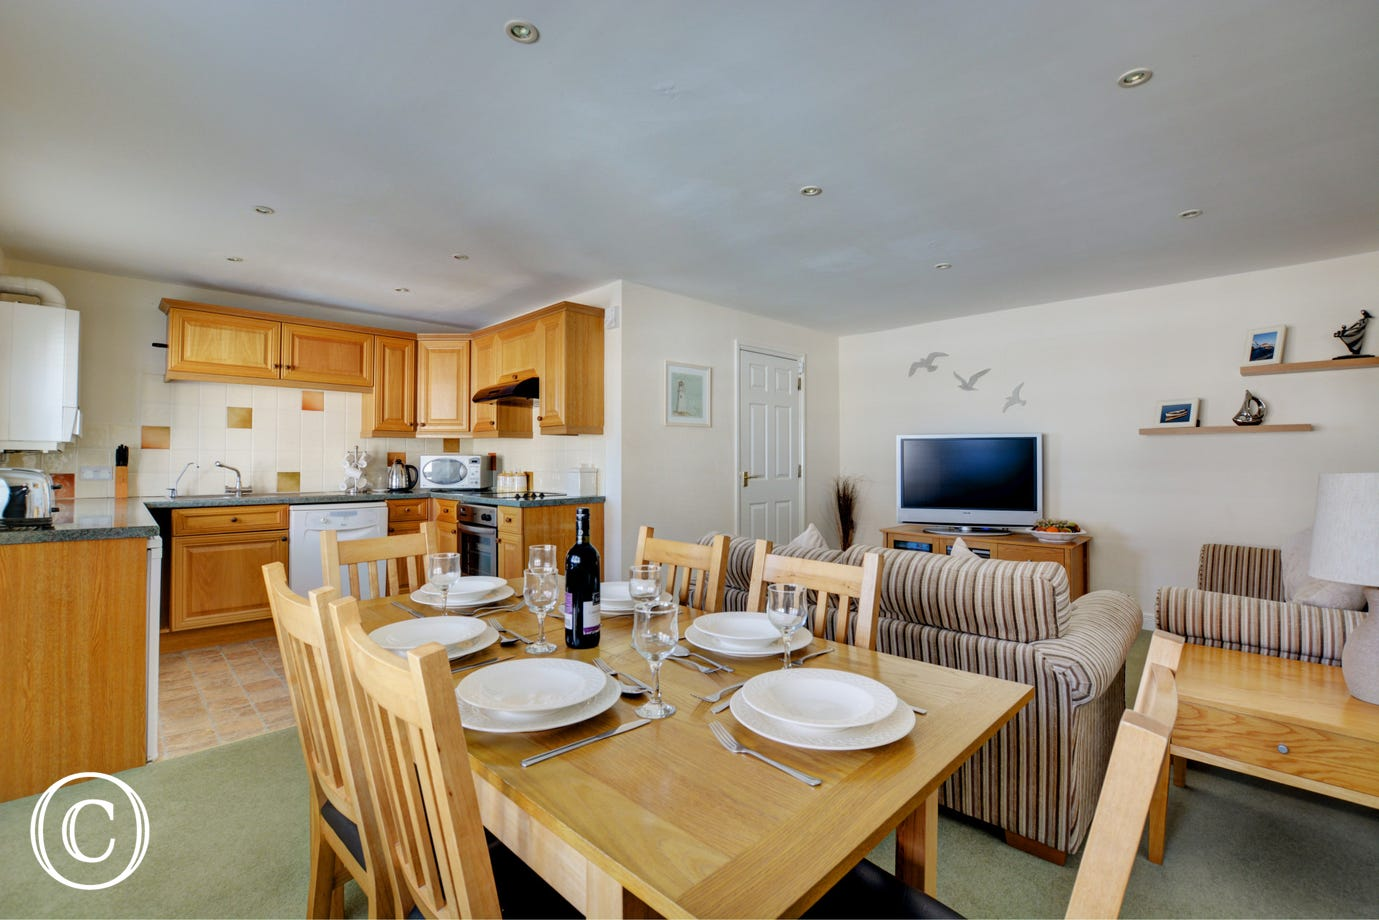 The open plan sitting/dining area is pleasantly furnished with comfortable seating which makes it a lovely family room